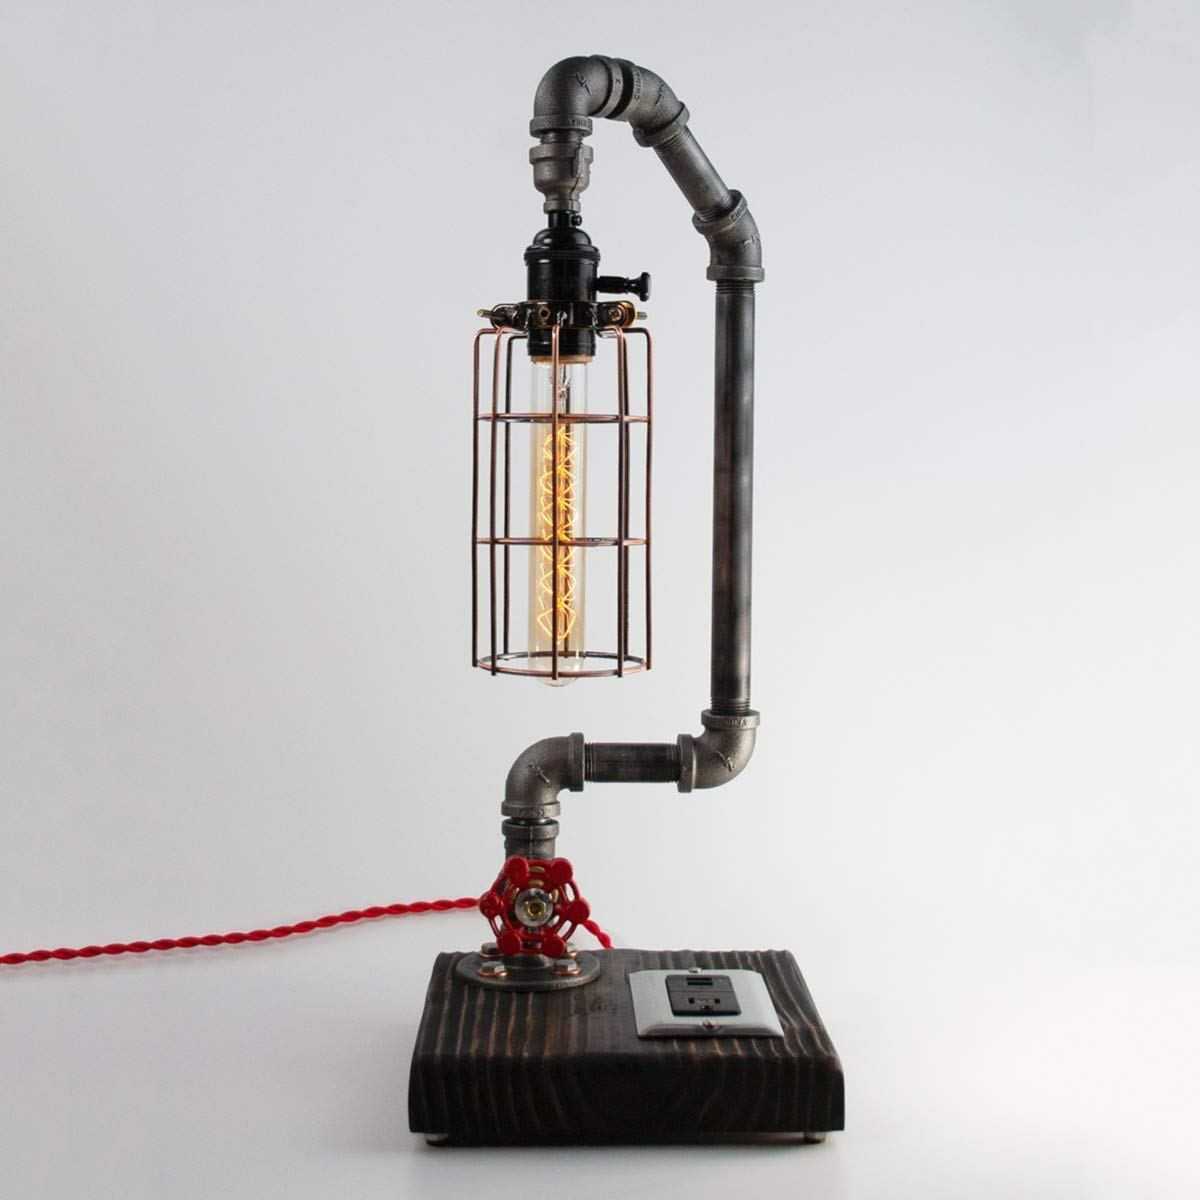 Modern Max 80% OFF Farmhouse Pipe Lamp with Valve USB Genuine Water and Switch